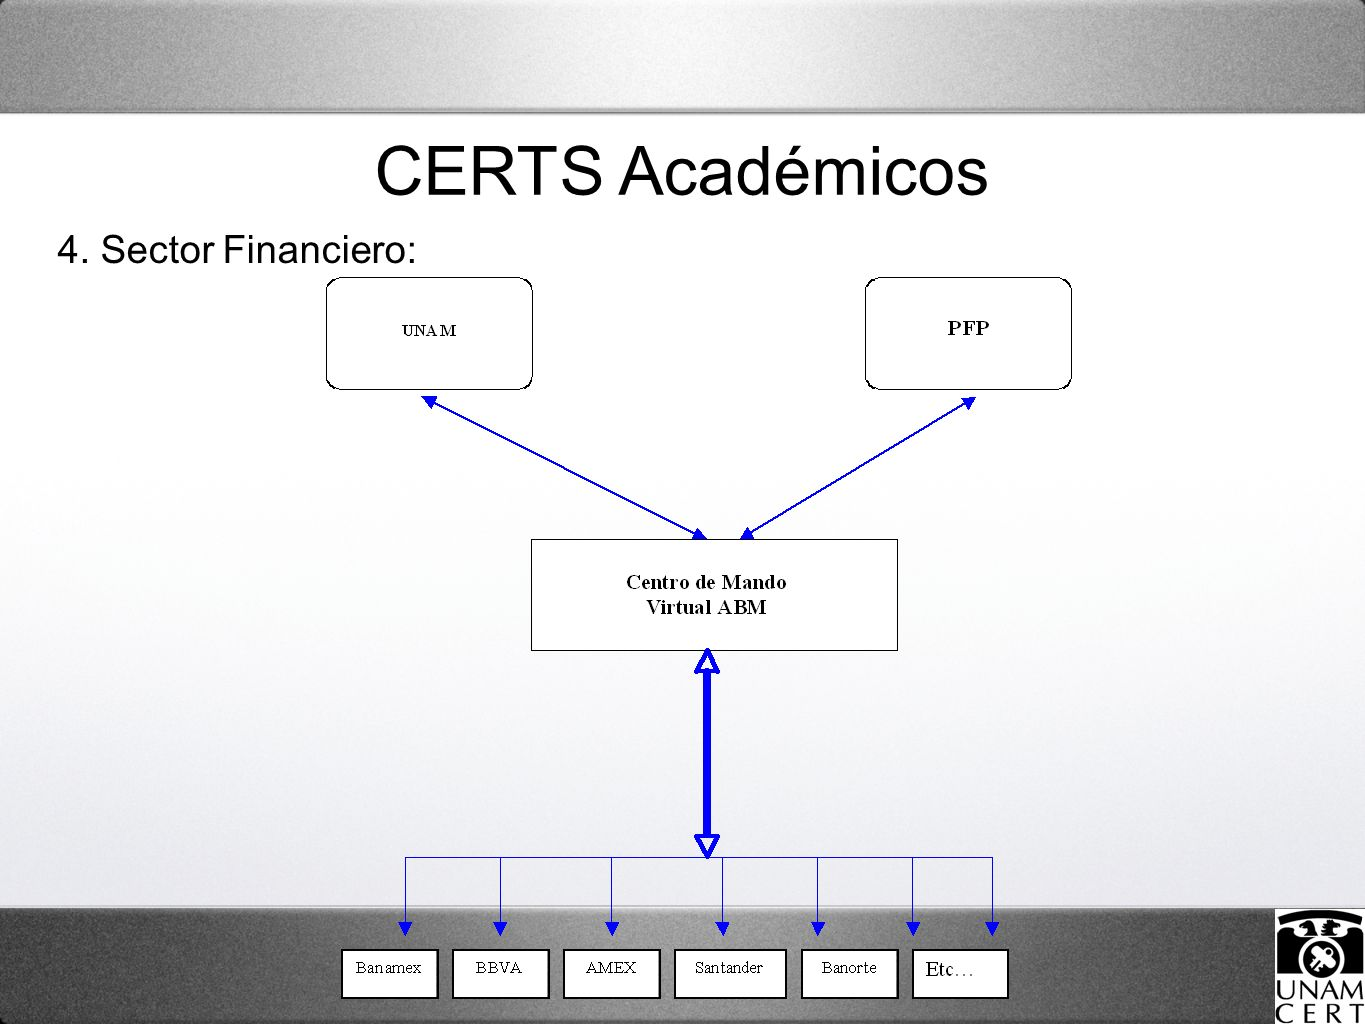 4. Sector Financiero: CERTS Académicos